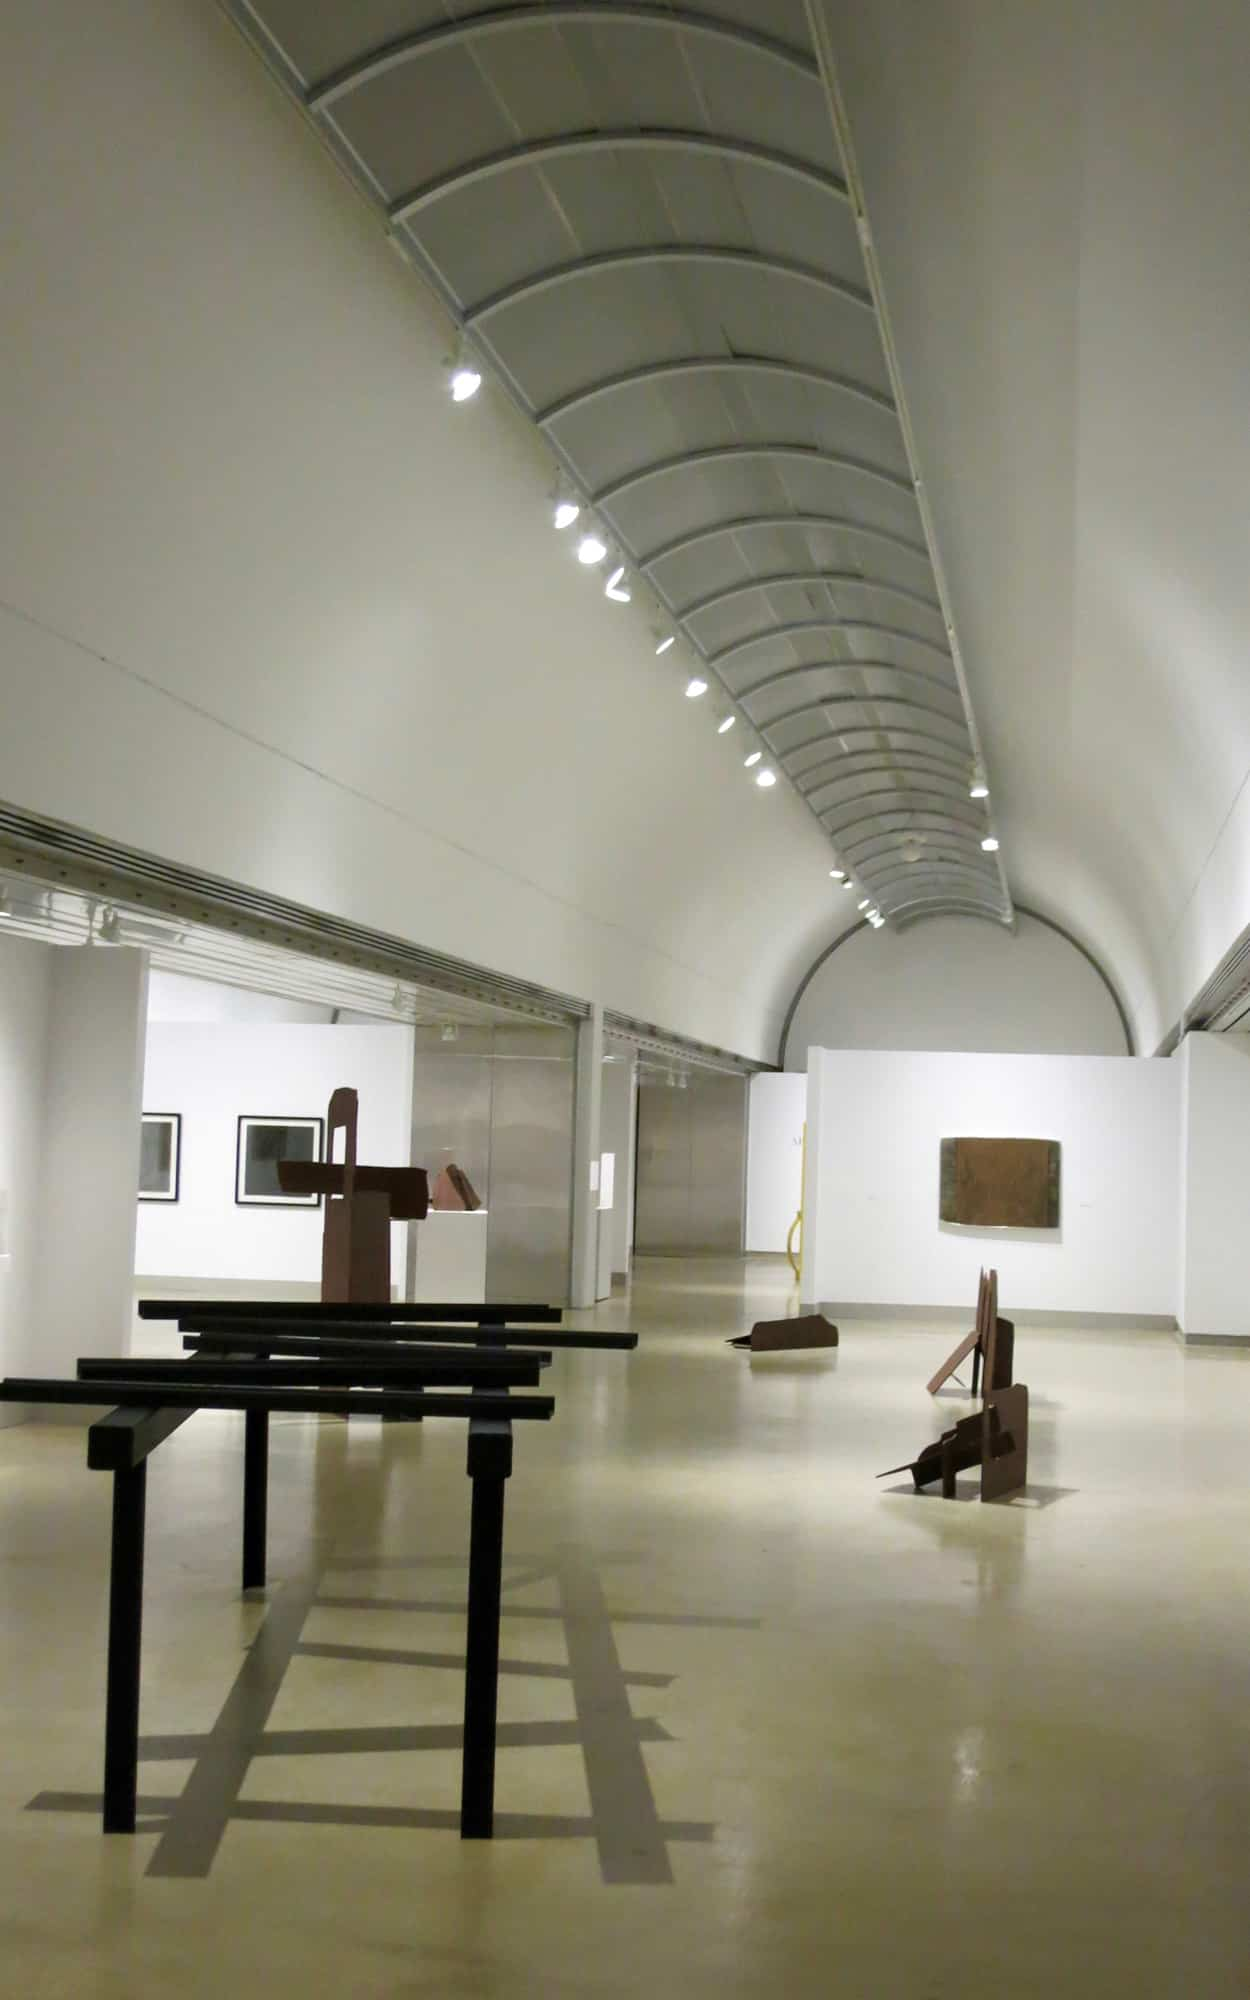 Exposed concrete vaults within a gallery space since painted white